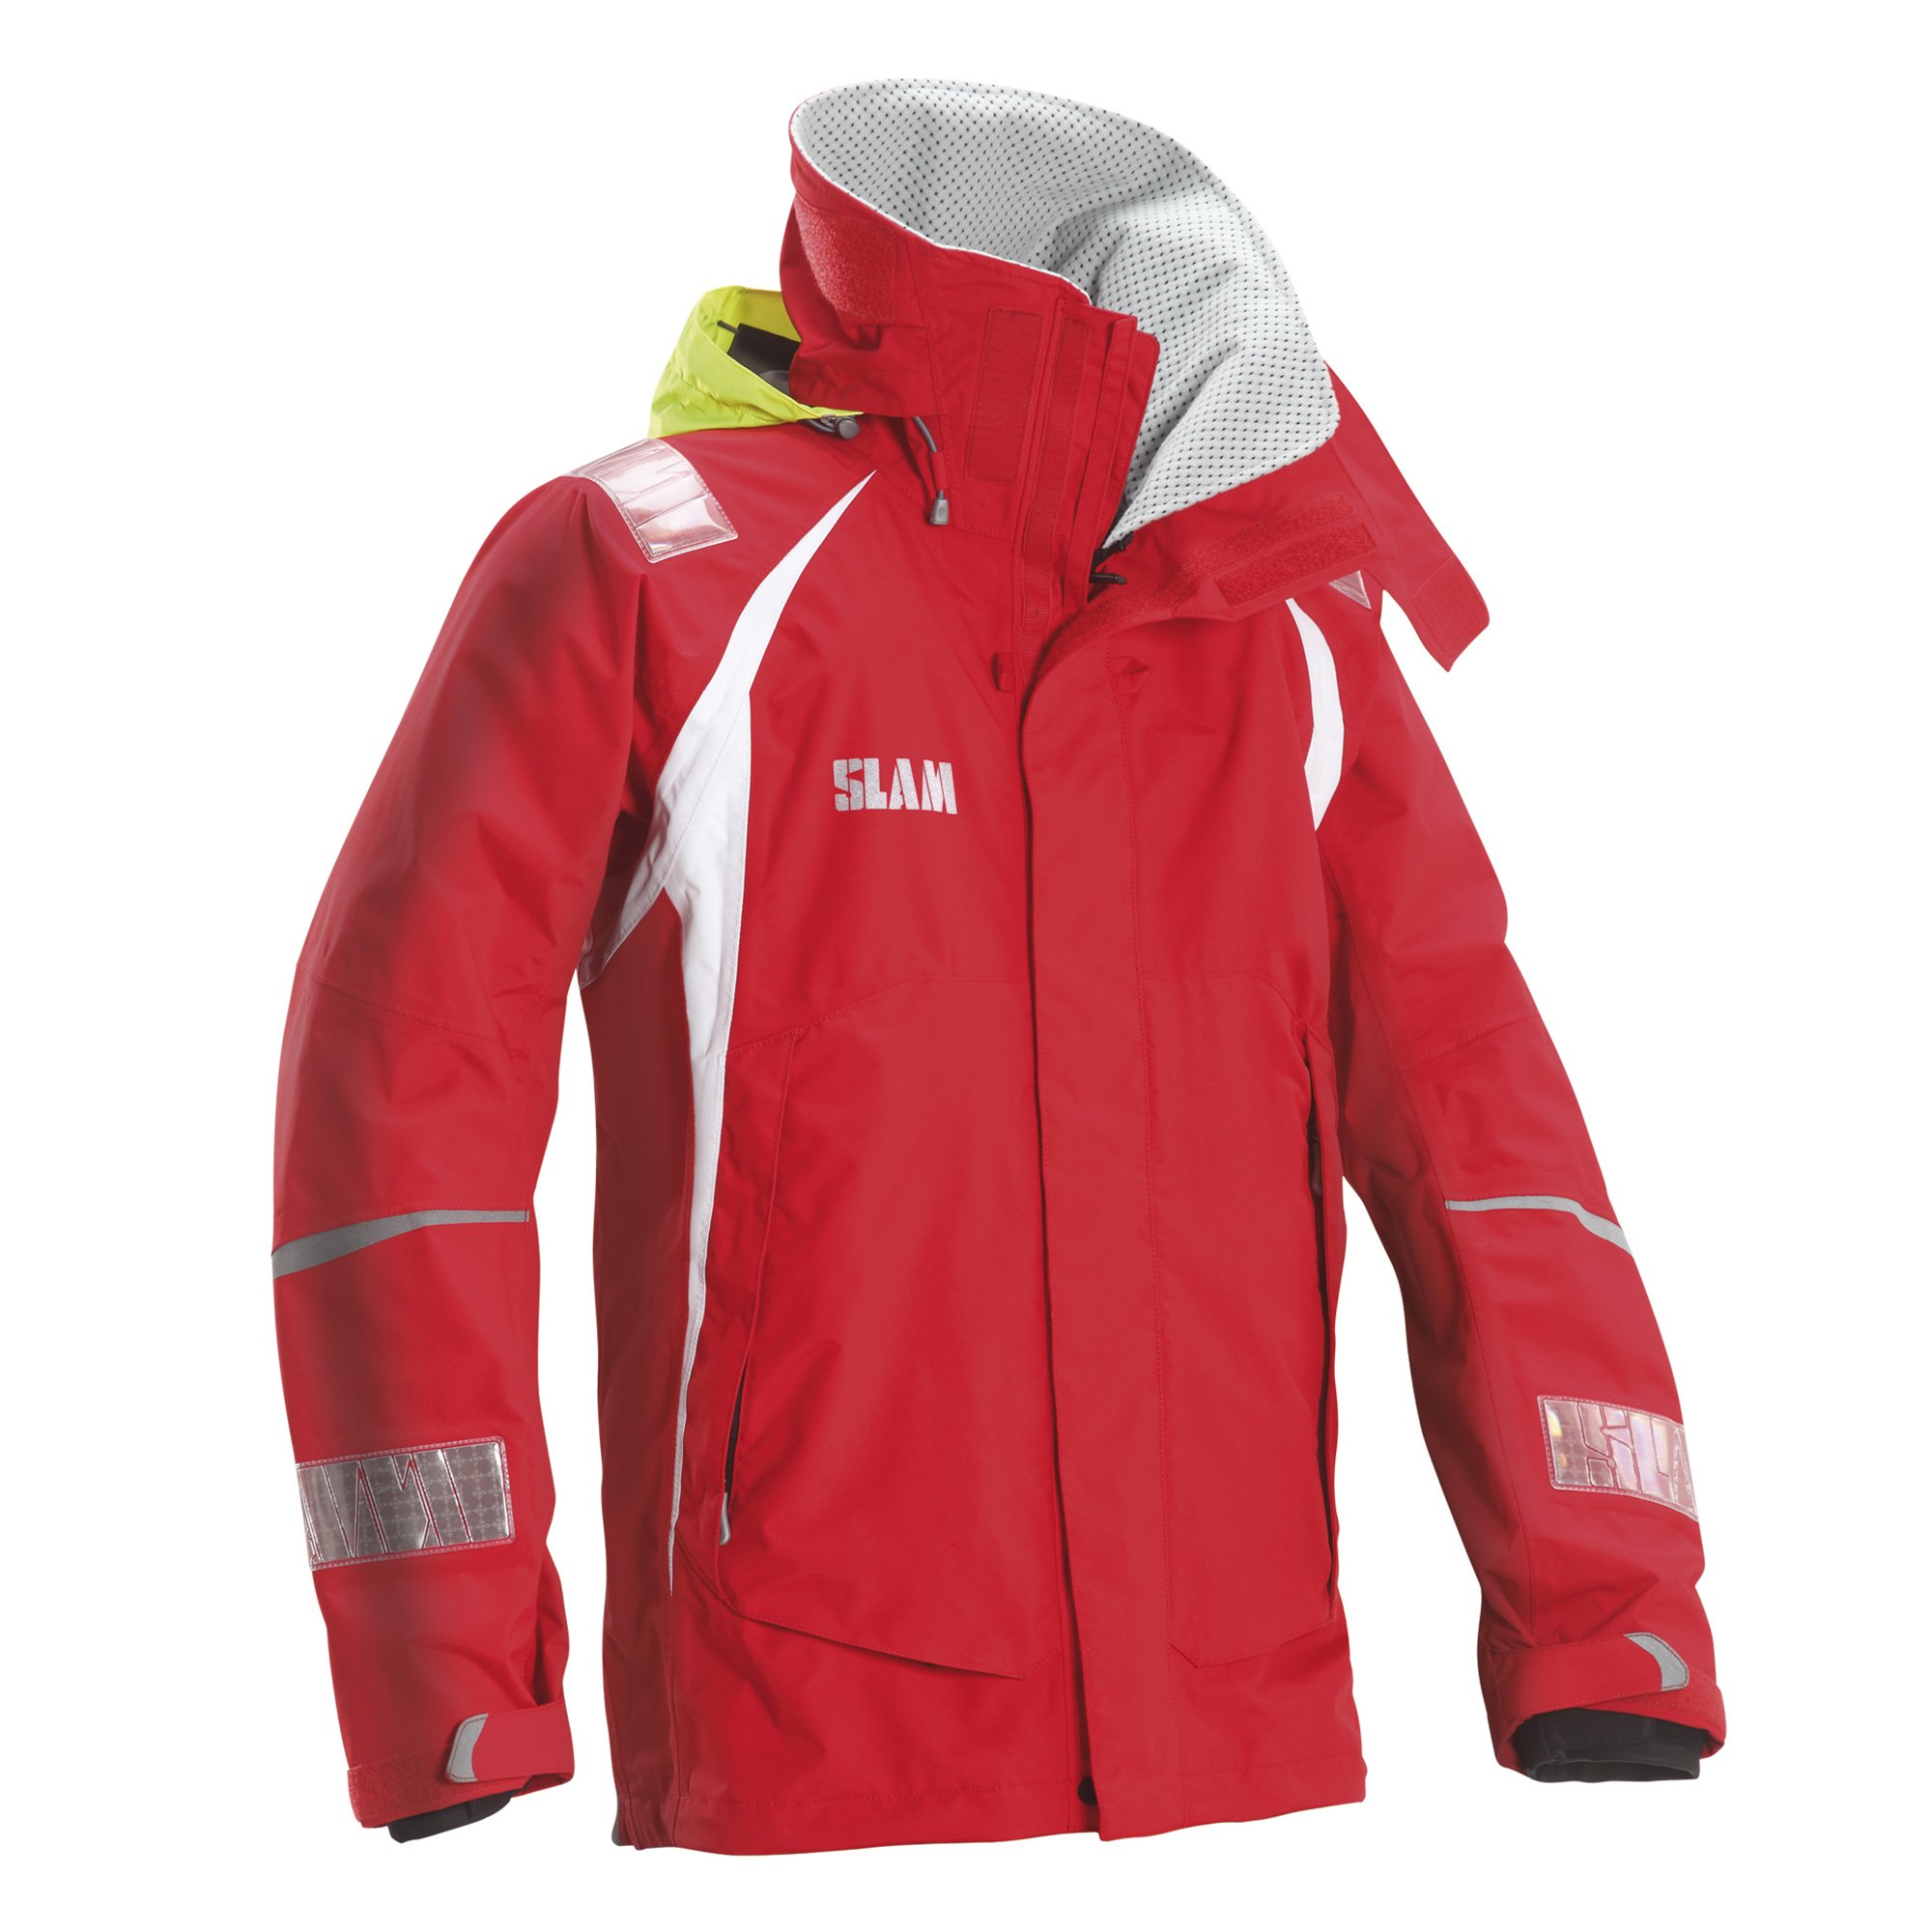 Slam Man Technical Collection Men's 160gr Nylon TUSSOR Force 3 Jacket Col.625 Perforated Fleece Collar Lined Red Long Sleeve Jacket 2X-Large